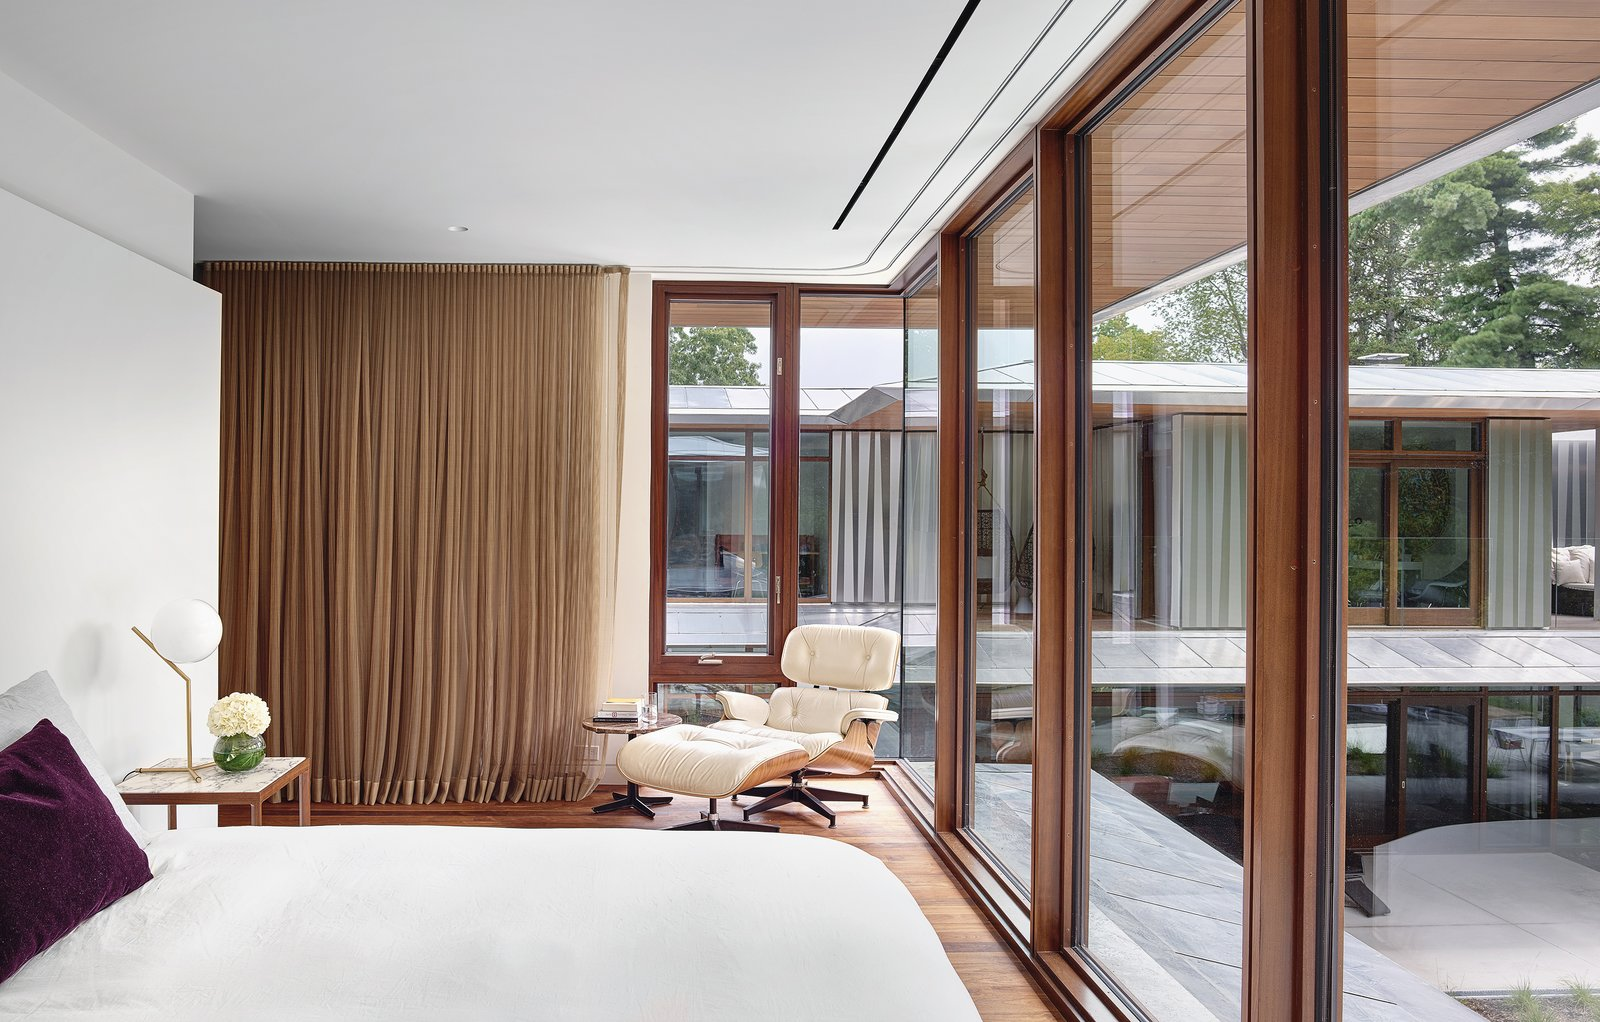 Bedroom, Medium Hardwood Floor, Table Lighting, Bed, Night Stands, Recessed Lighting, Lamps, and Chair A Mahogany storefront system allows for grand views of the exterior landscape and sculpture garden.  A recessed track allows curtains to be drawn in times of sleep or privacy.   Artery House